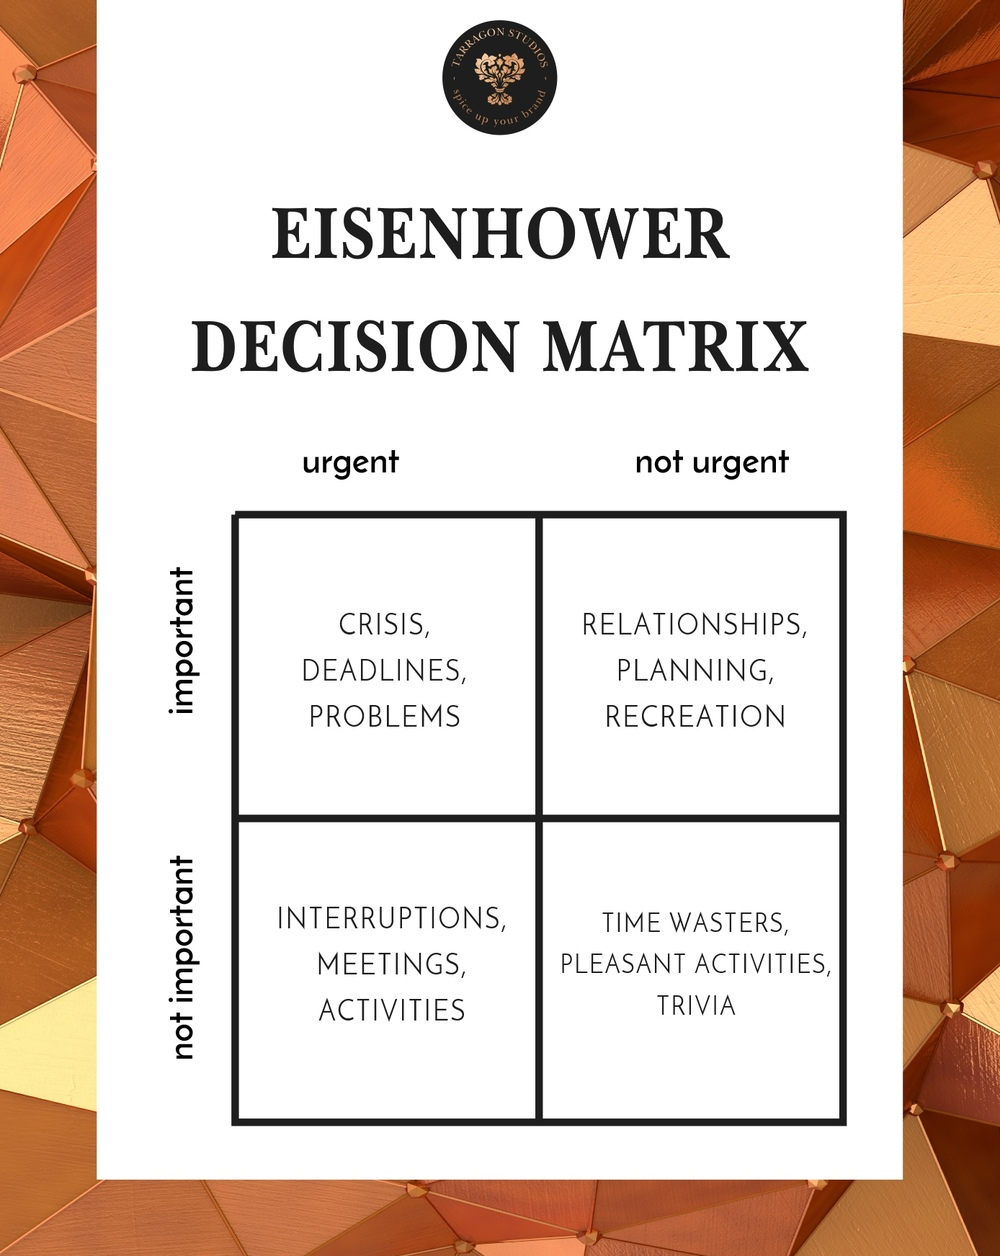 Eisenhower decision matrix for filtering decisions.